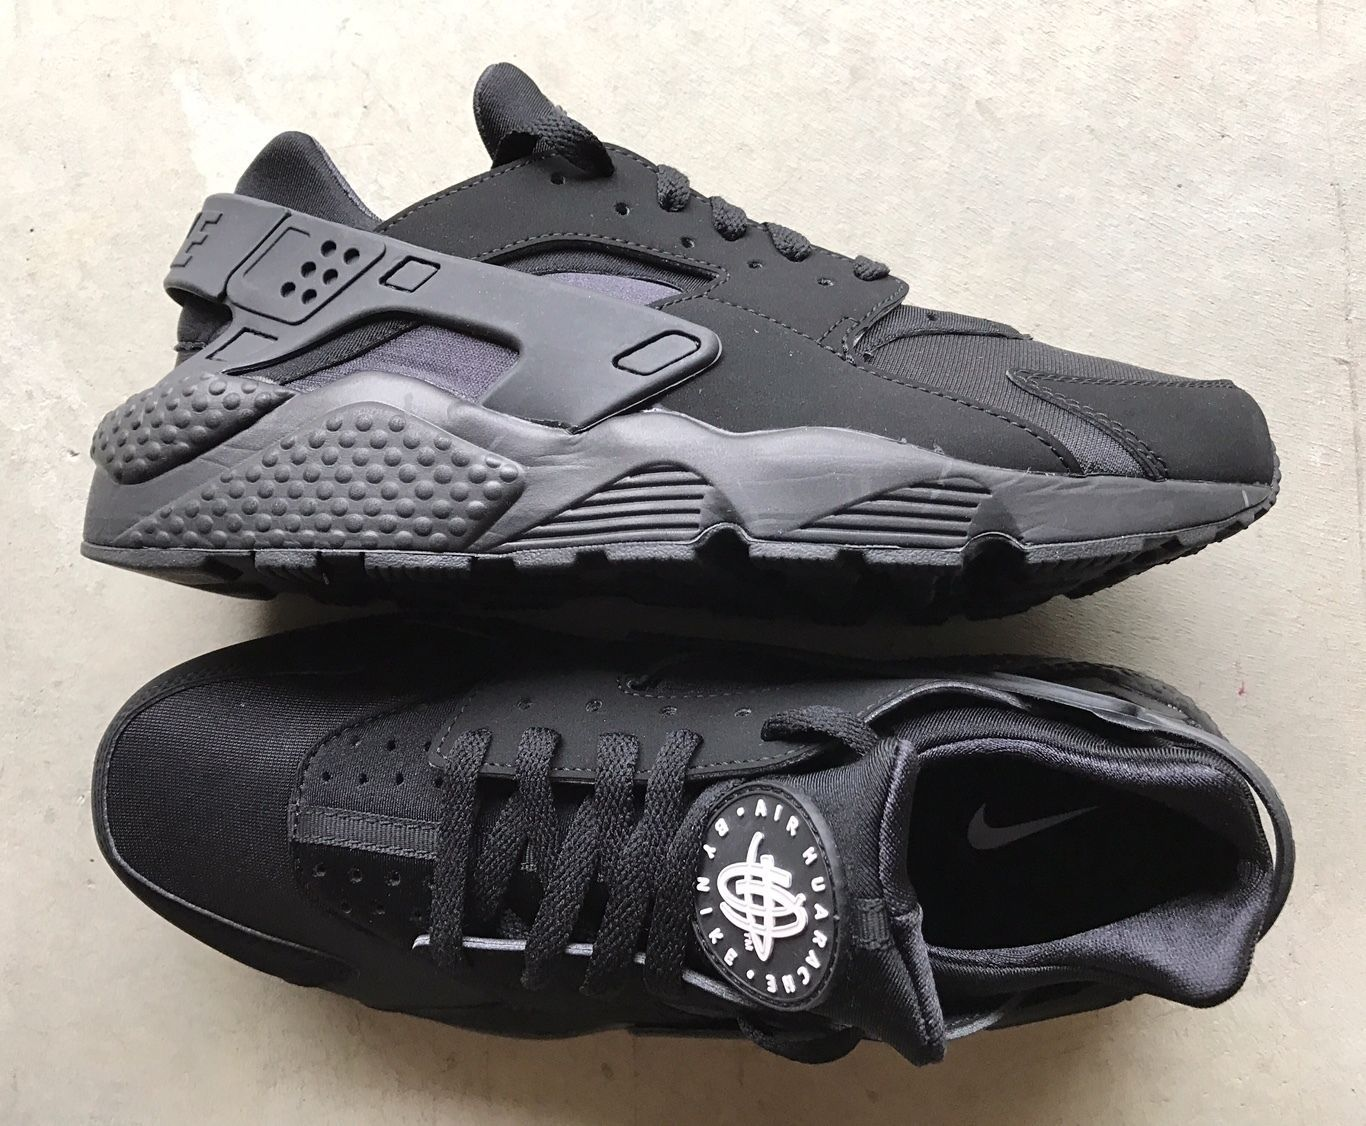 Nike Air Huarache Black Black White size 13 (# 318429 003